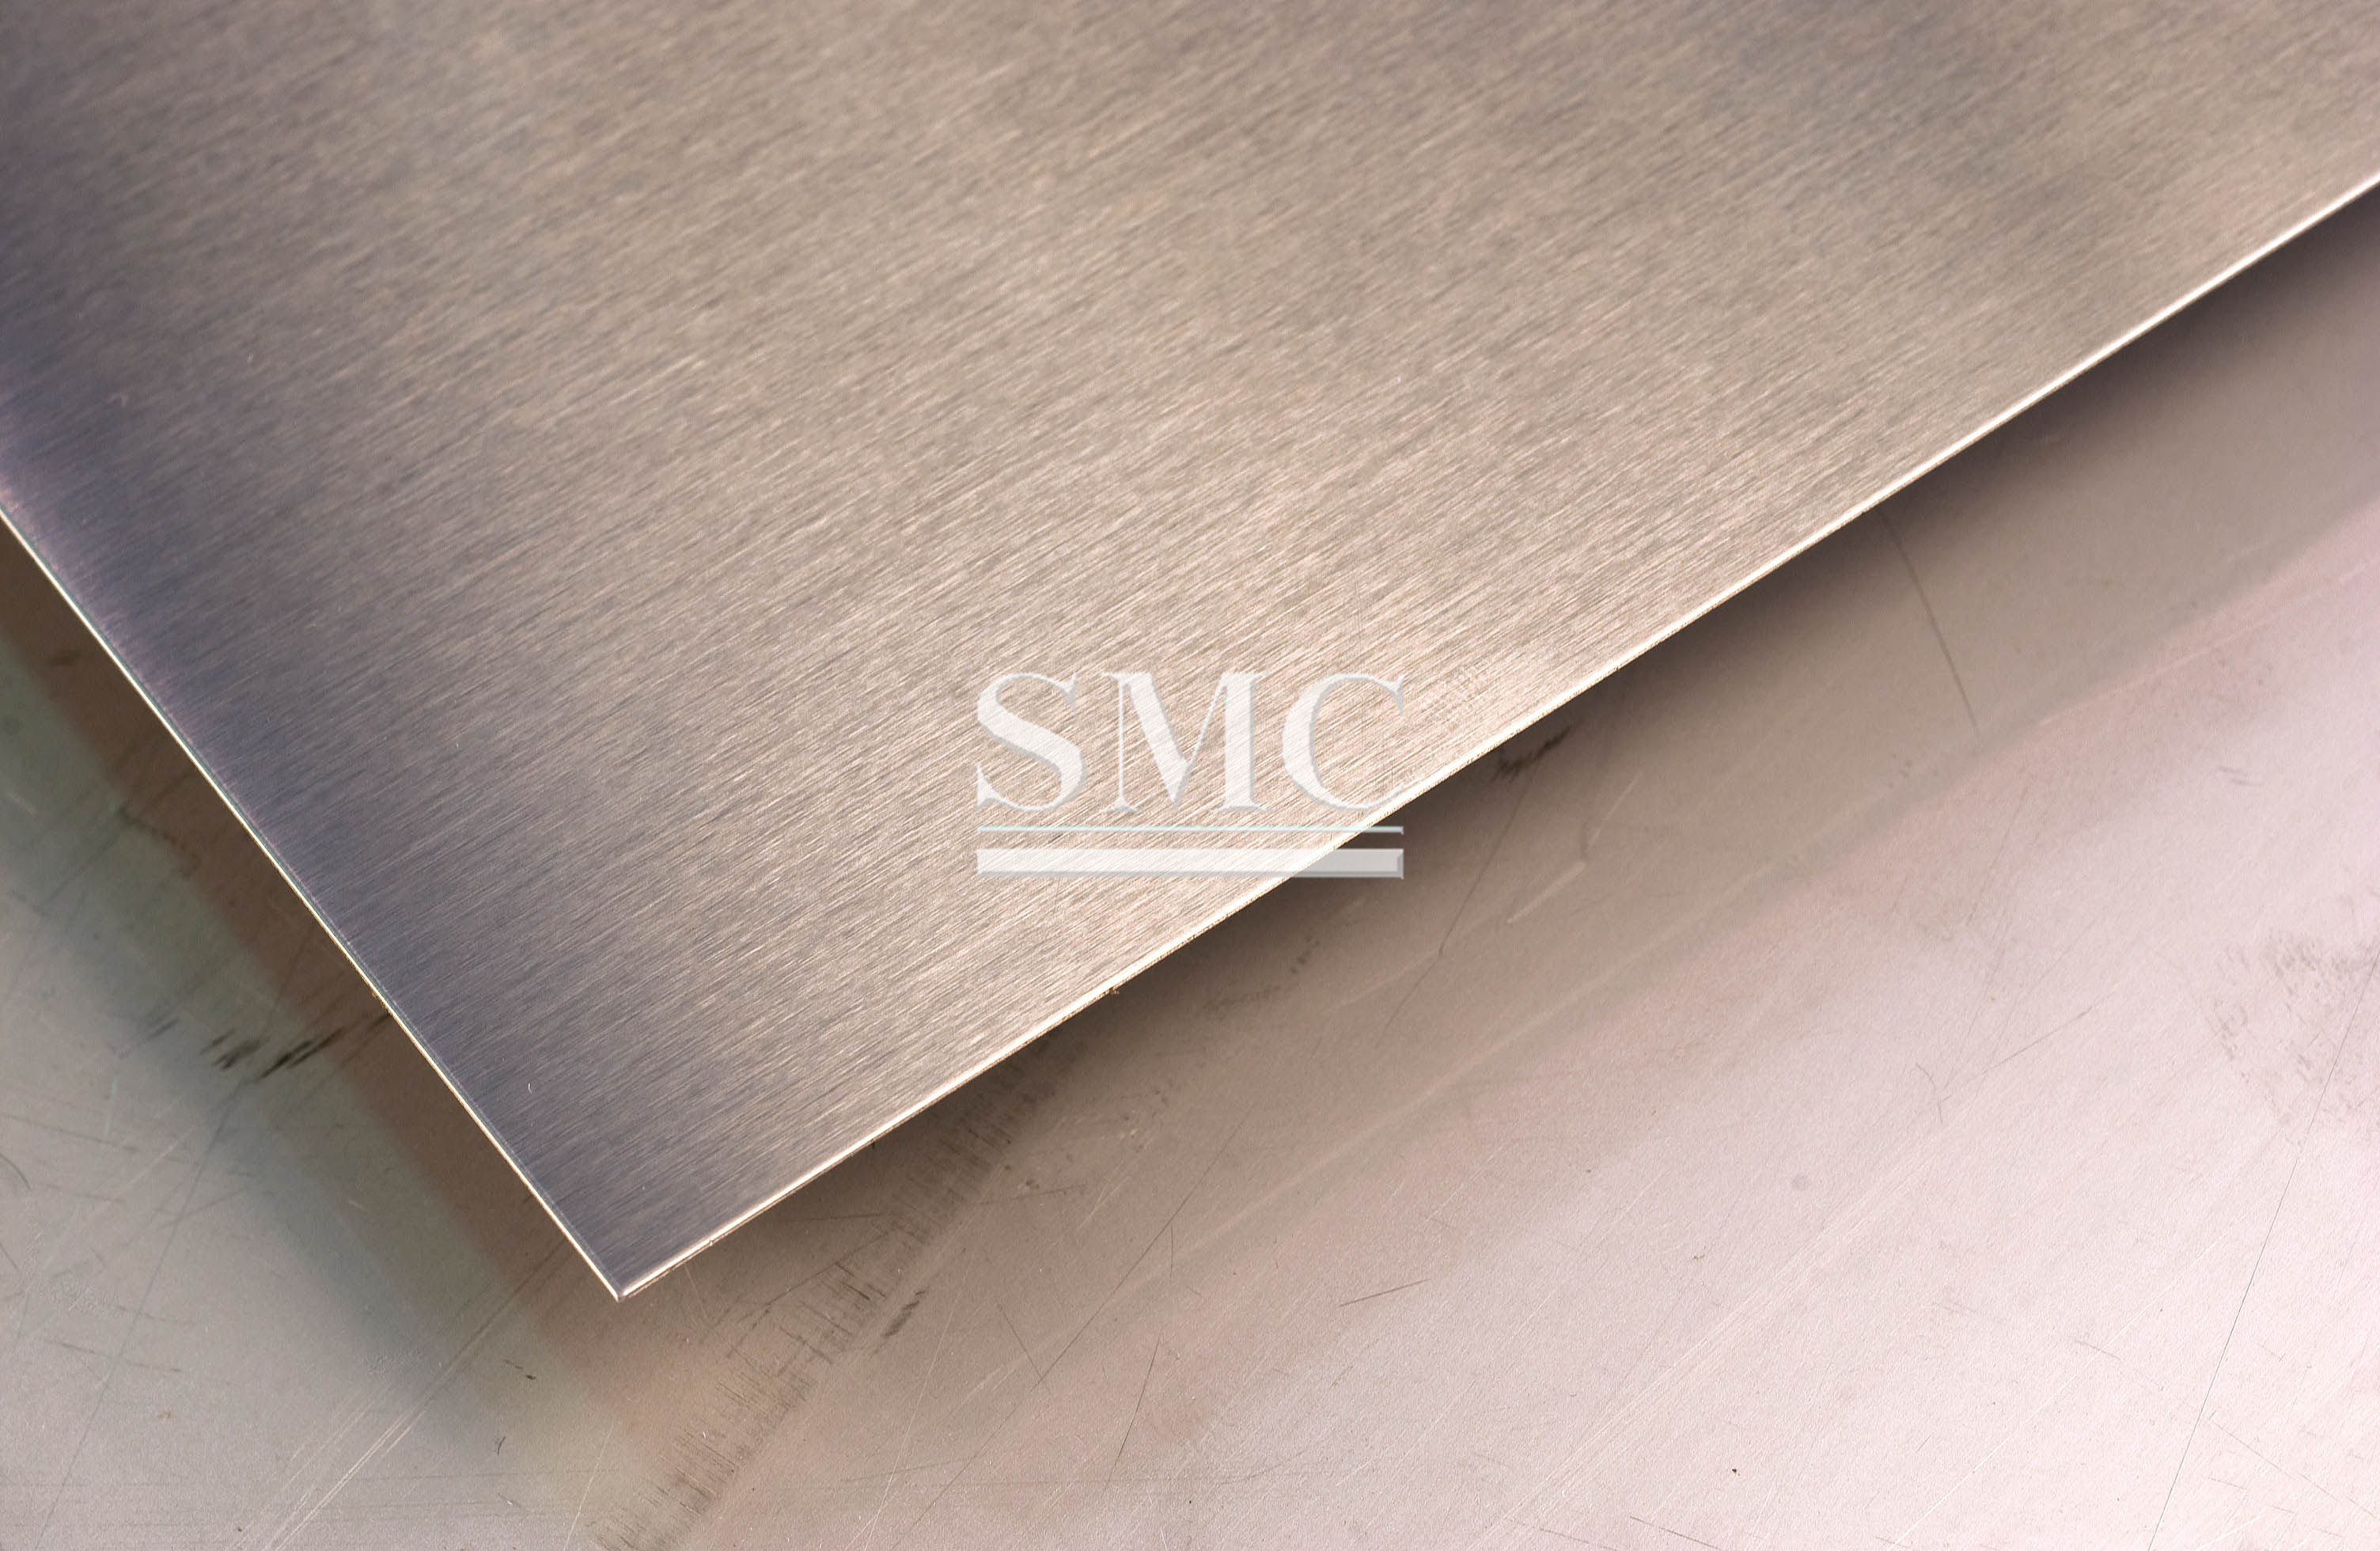 Sheet is available in a variety of grades and finishes for details of our available finishes please see the stainless steel sheet section on our website